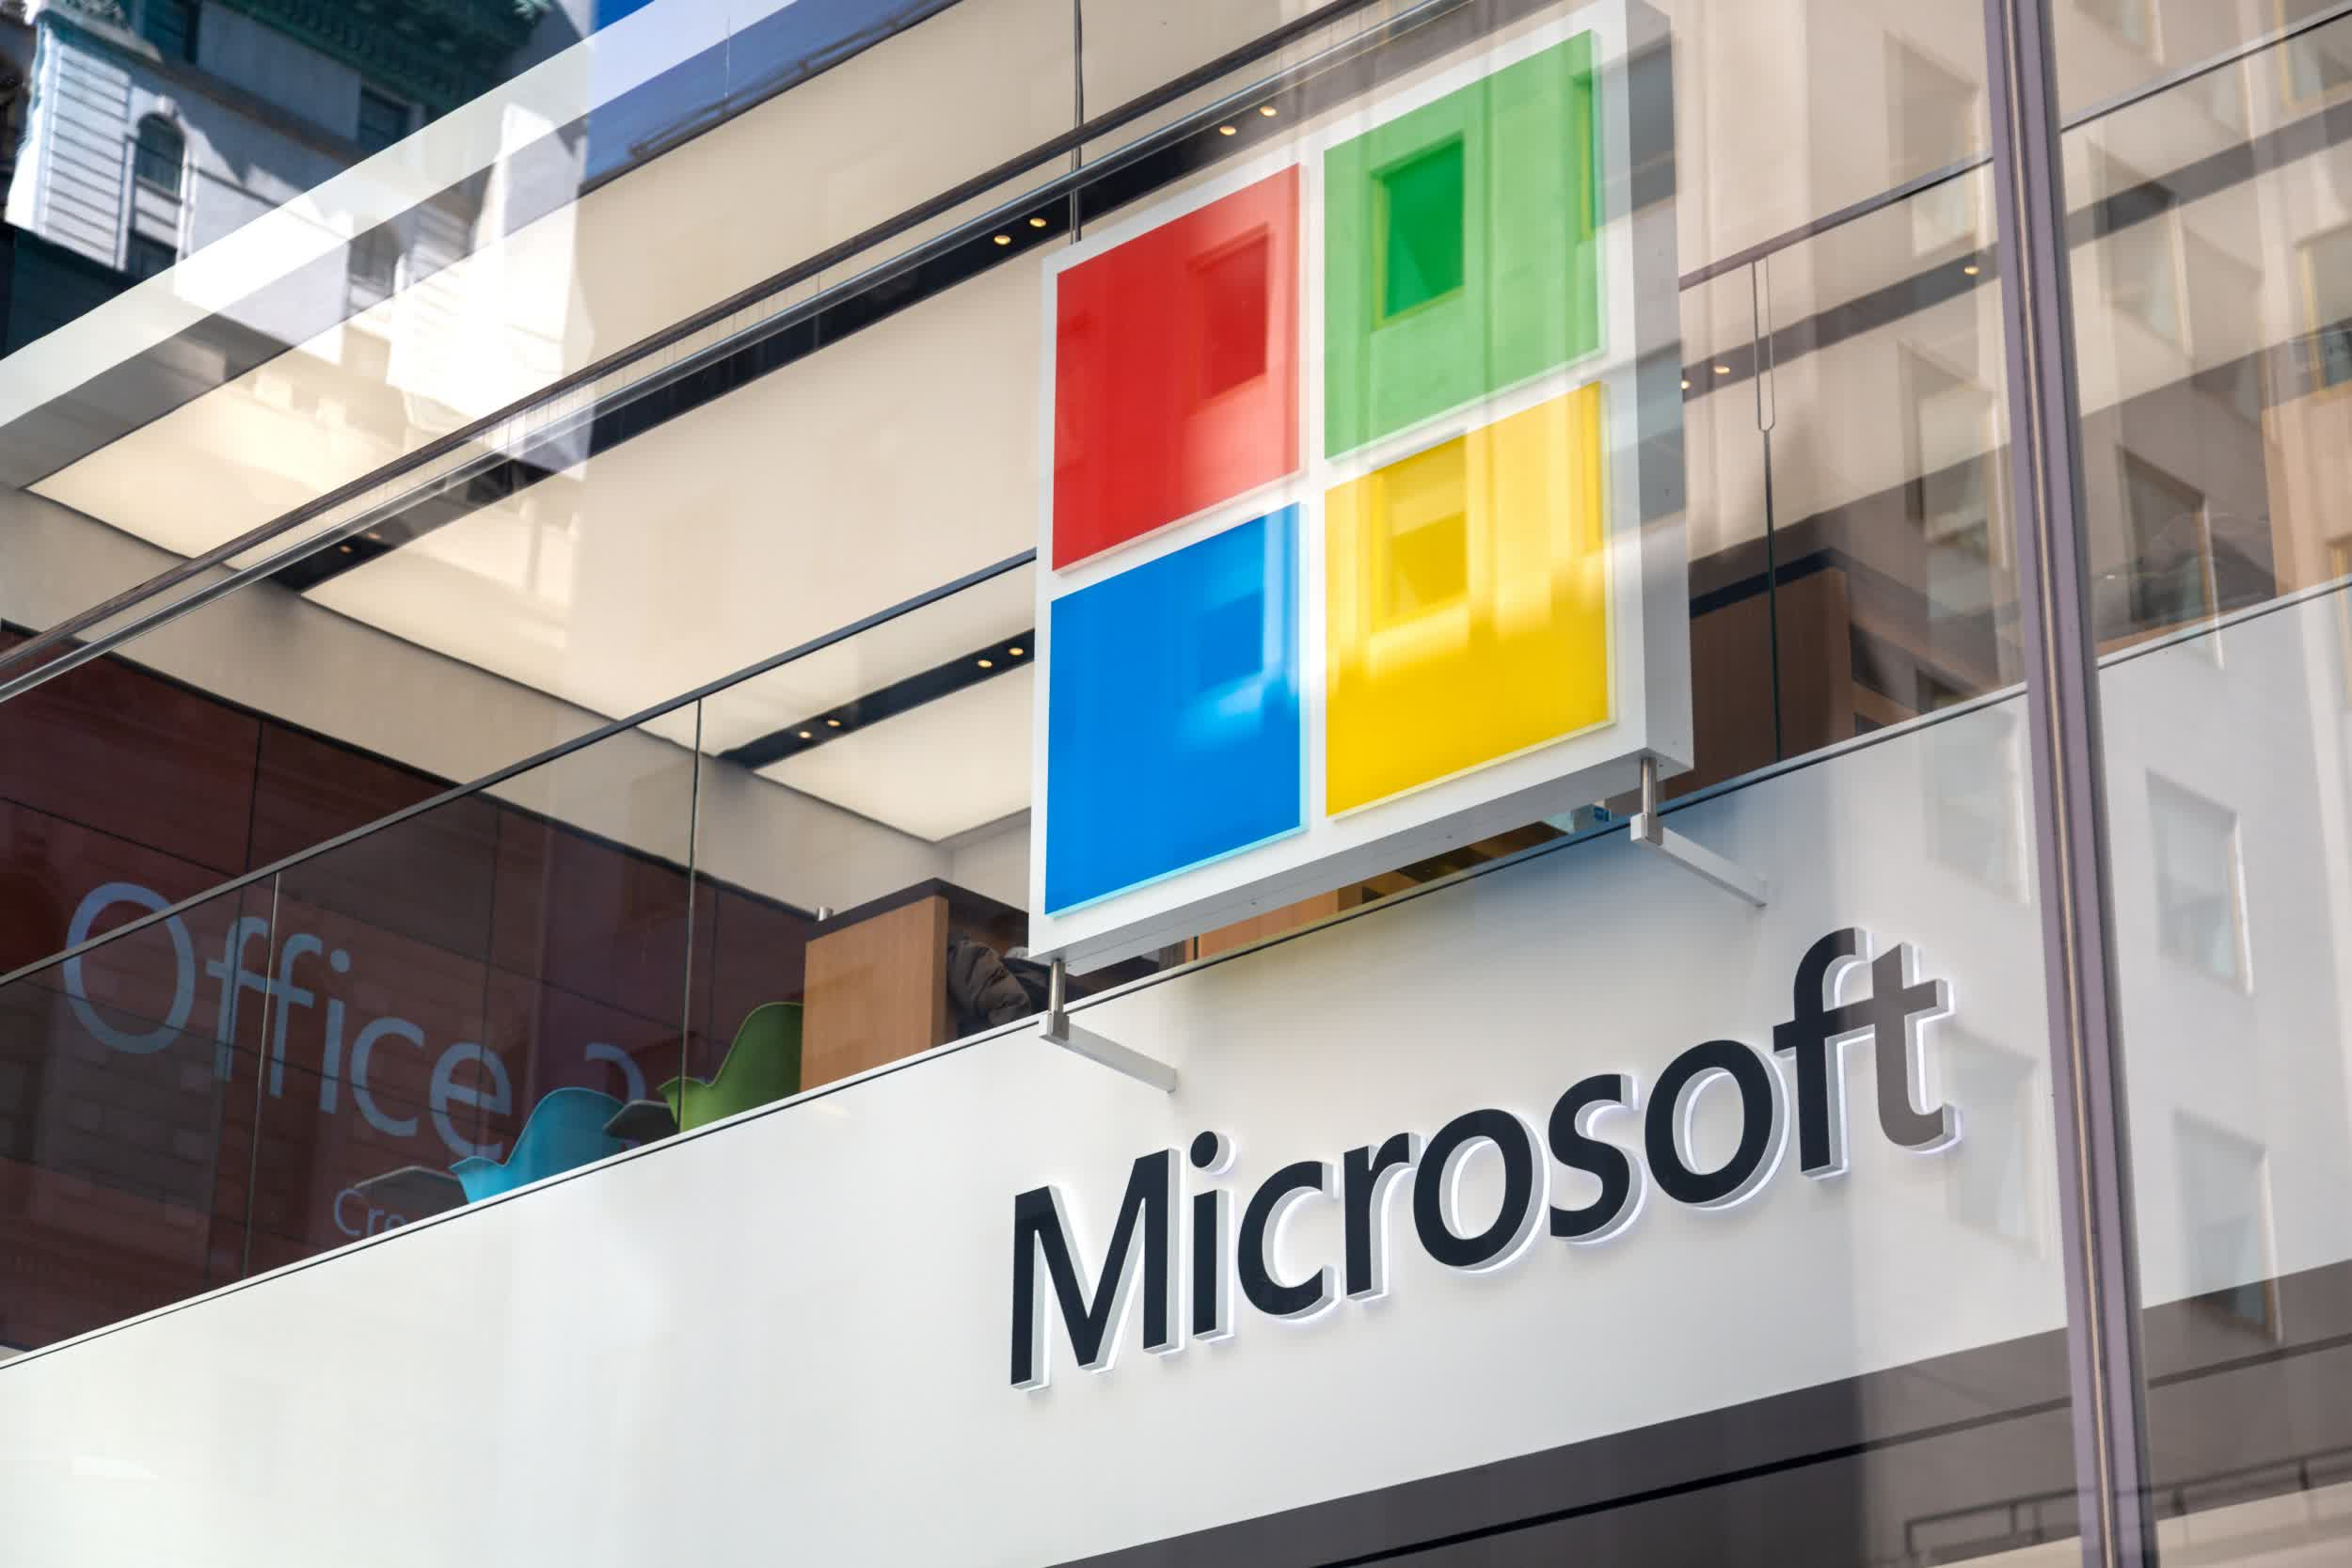 Microsoft agrees to acquire speech tech company Nuance for $19.7 billion in cash